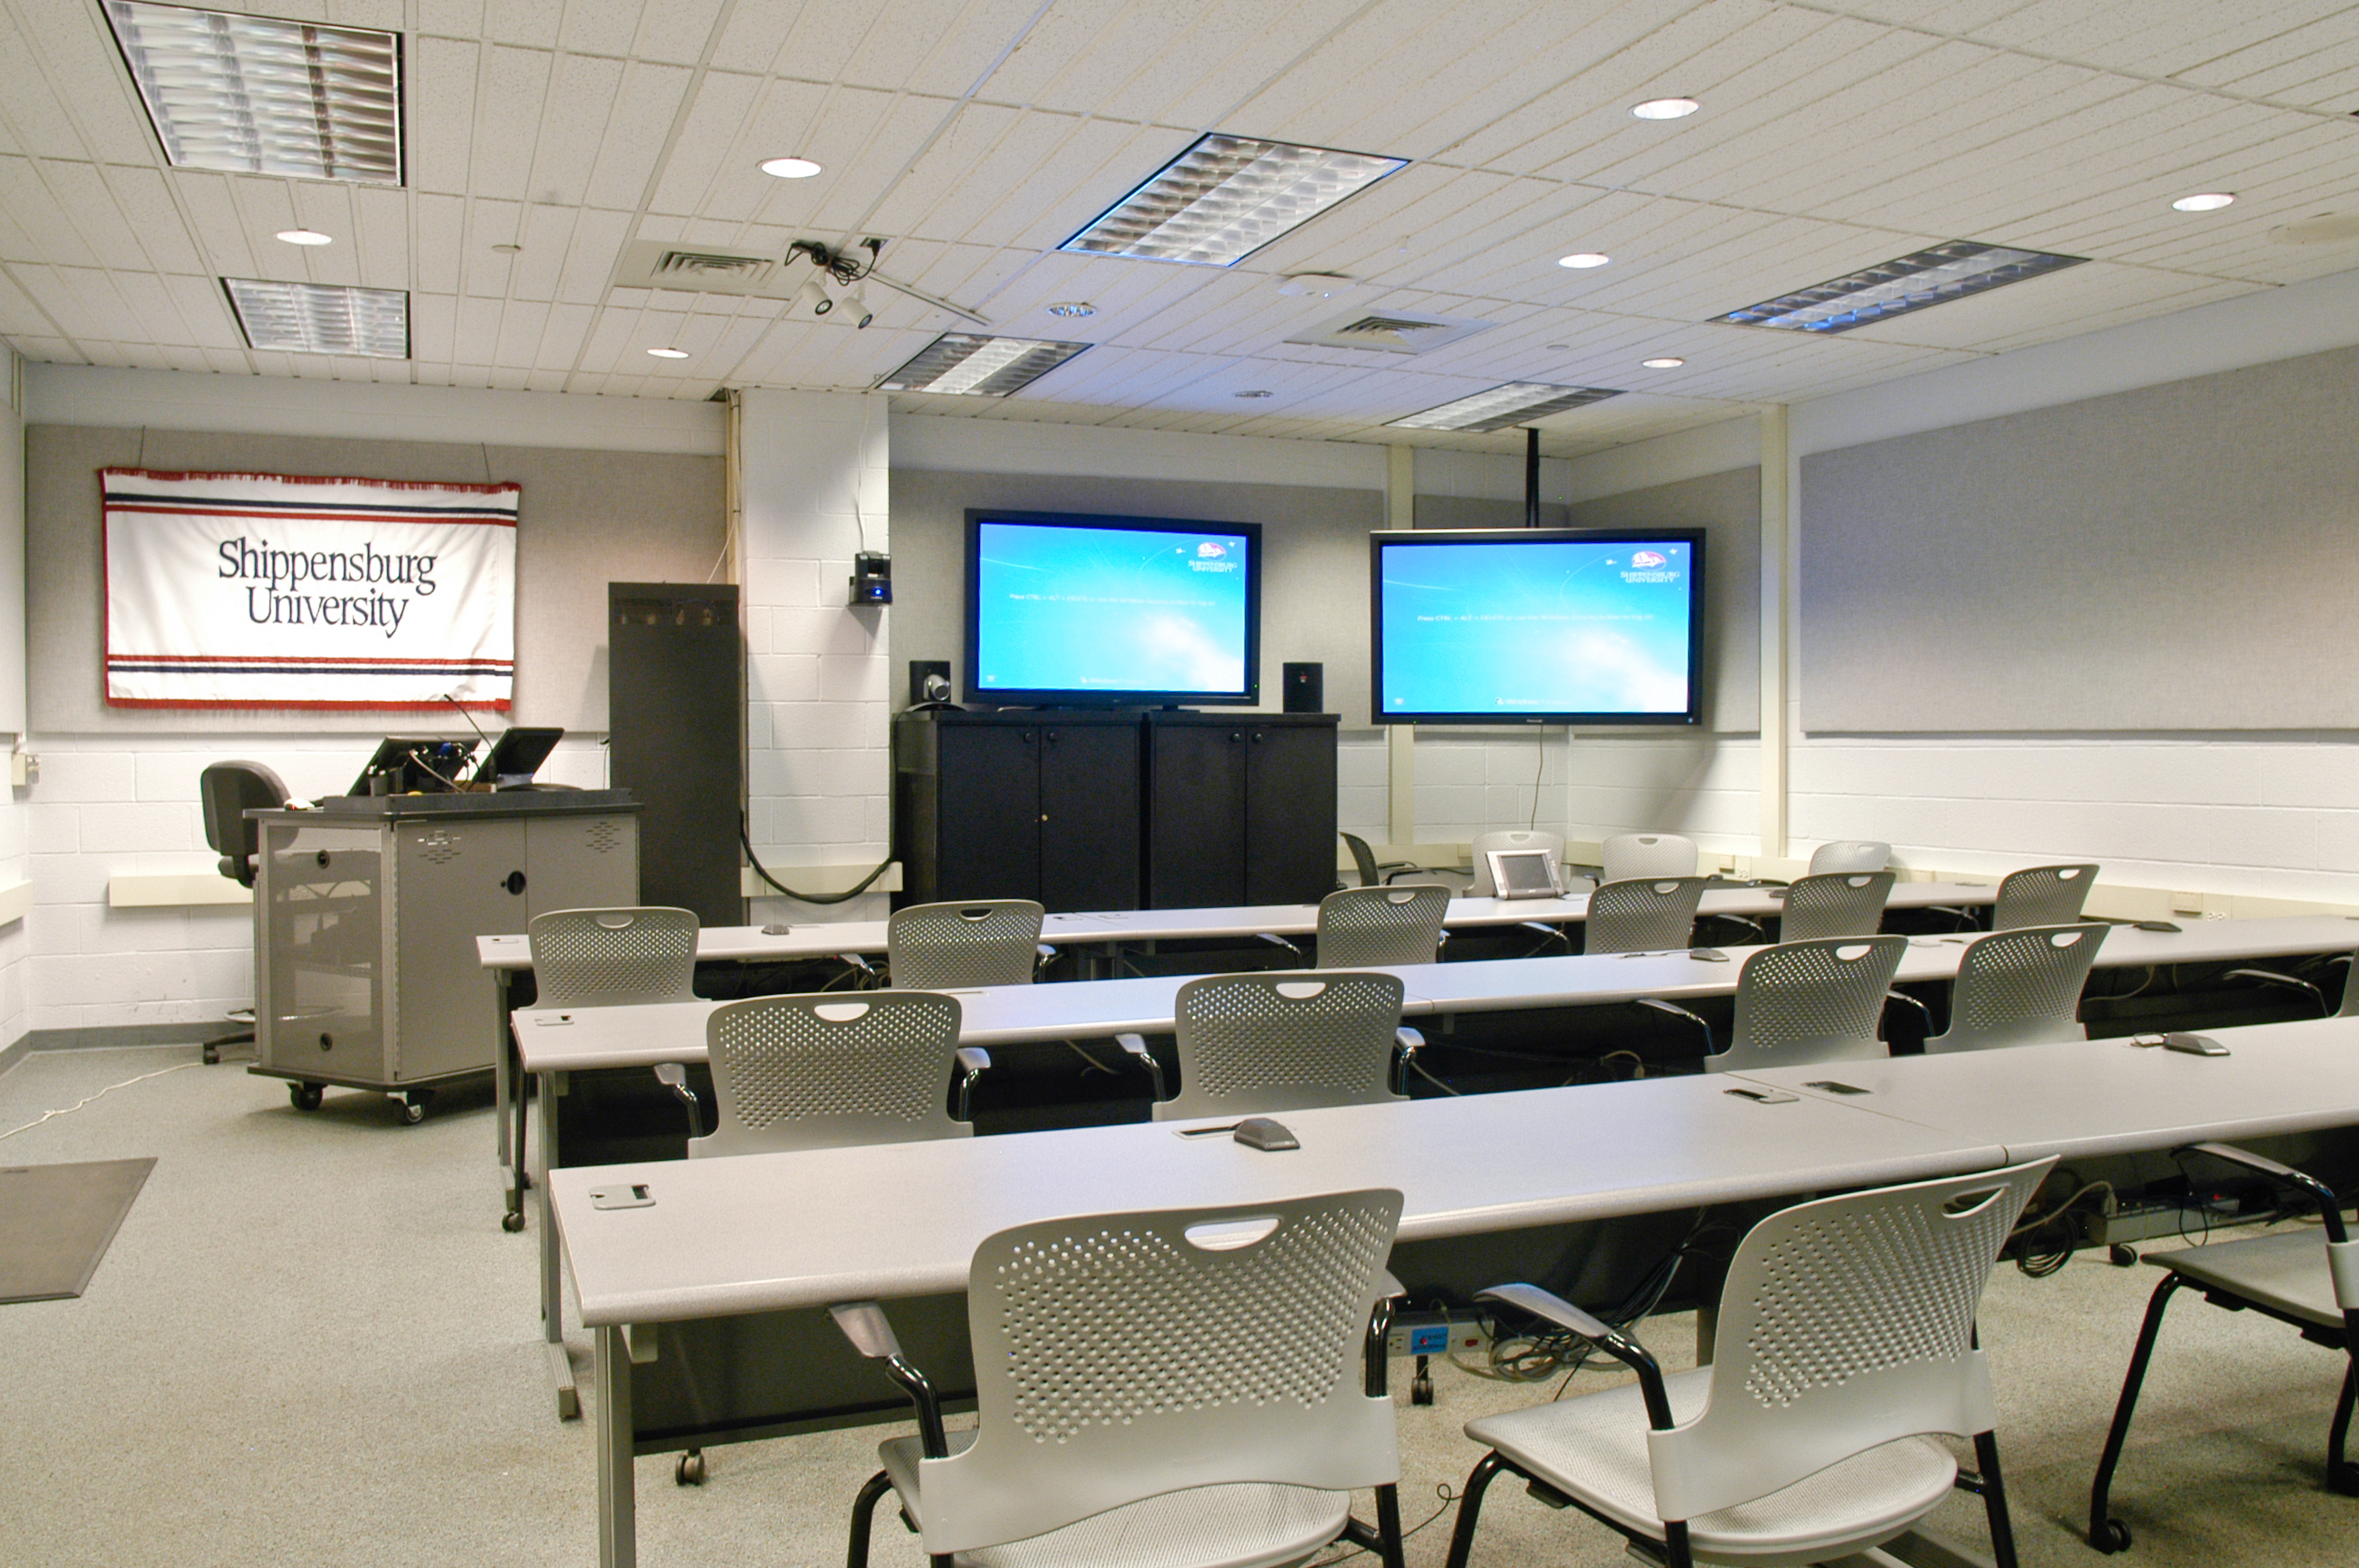 Shippensburg University Video Conference Rooms Reserve